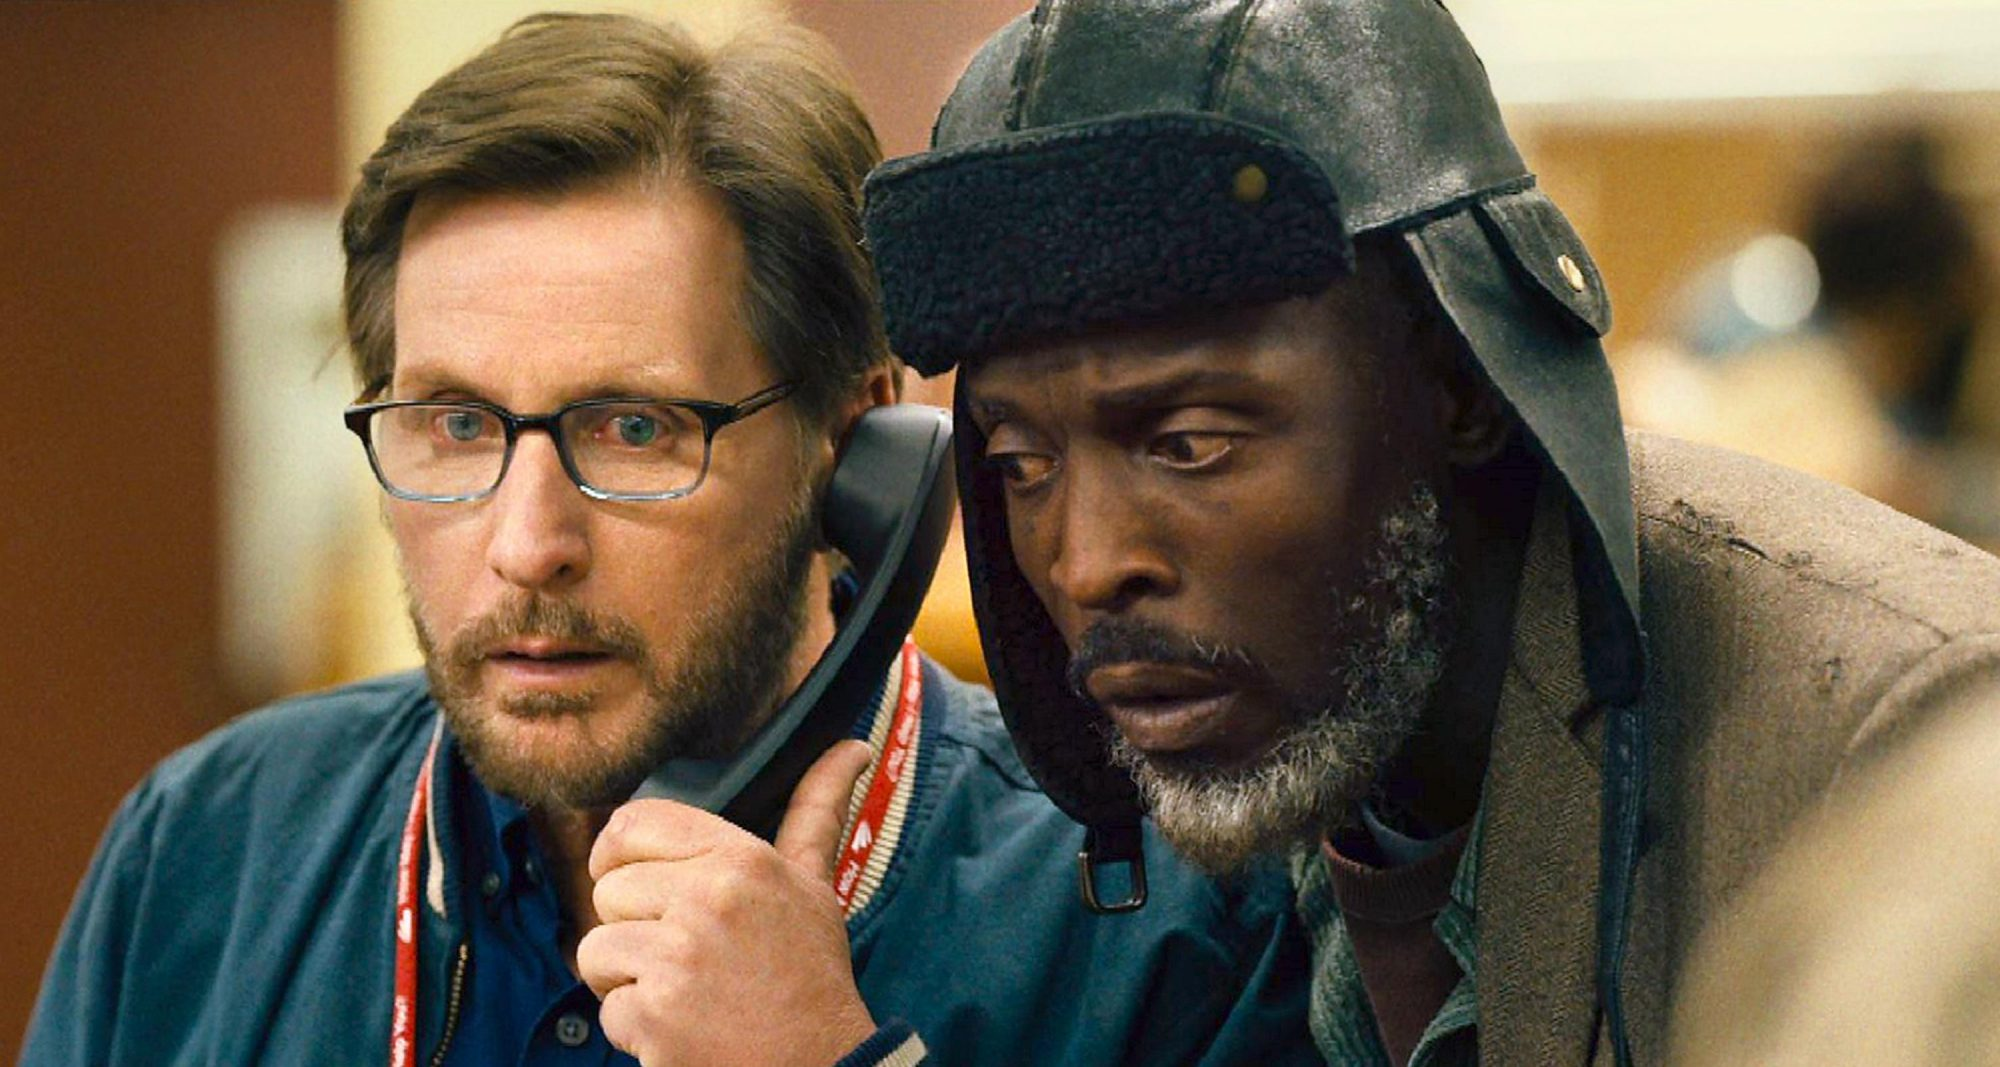 Emilio Estevez & Michael Kenneth Williams in the film The Public.